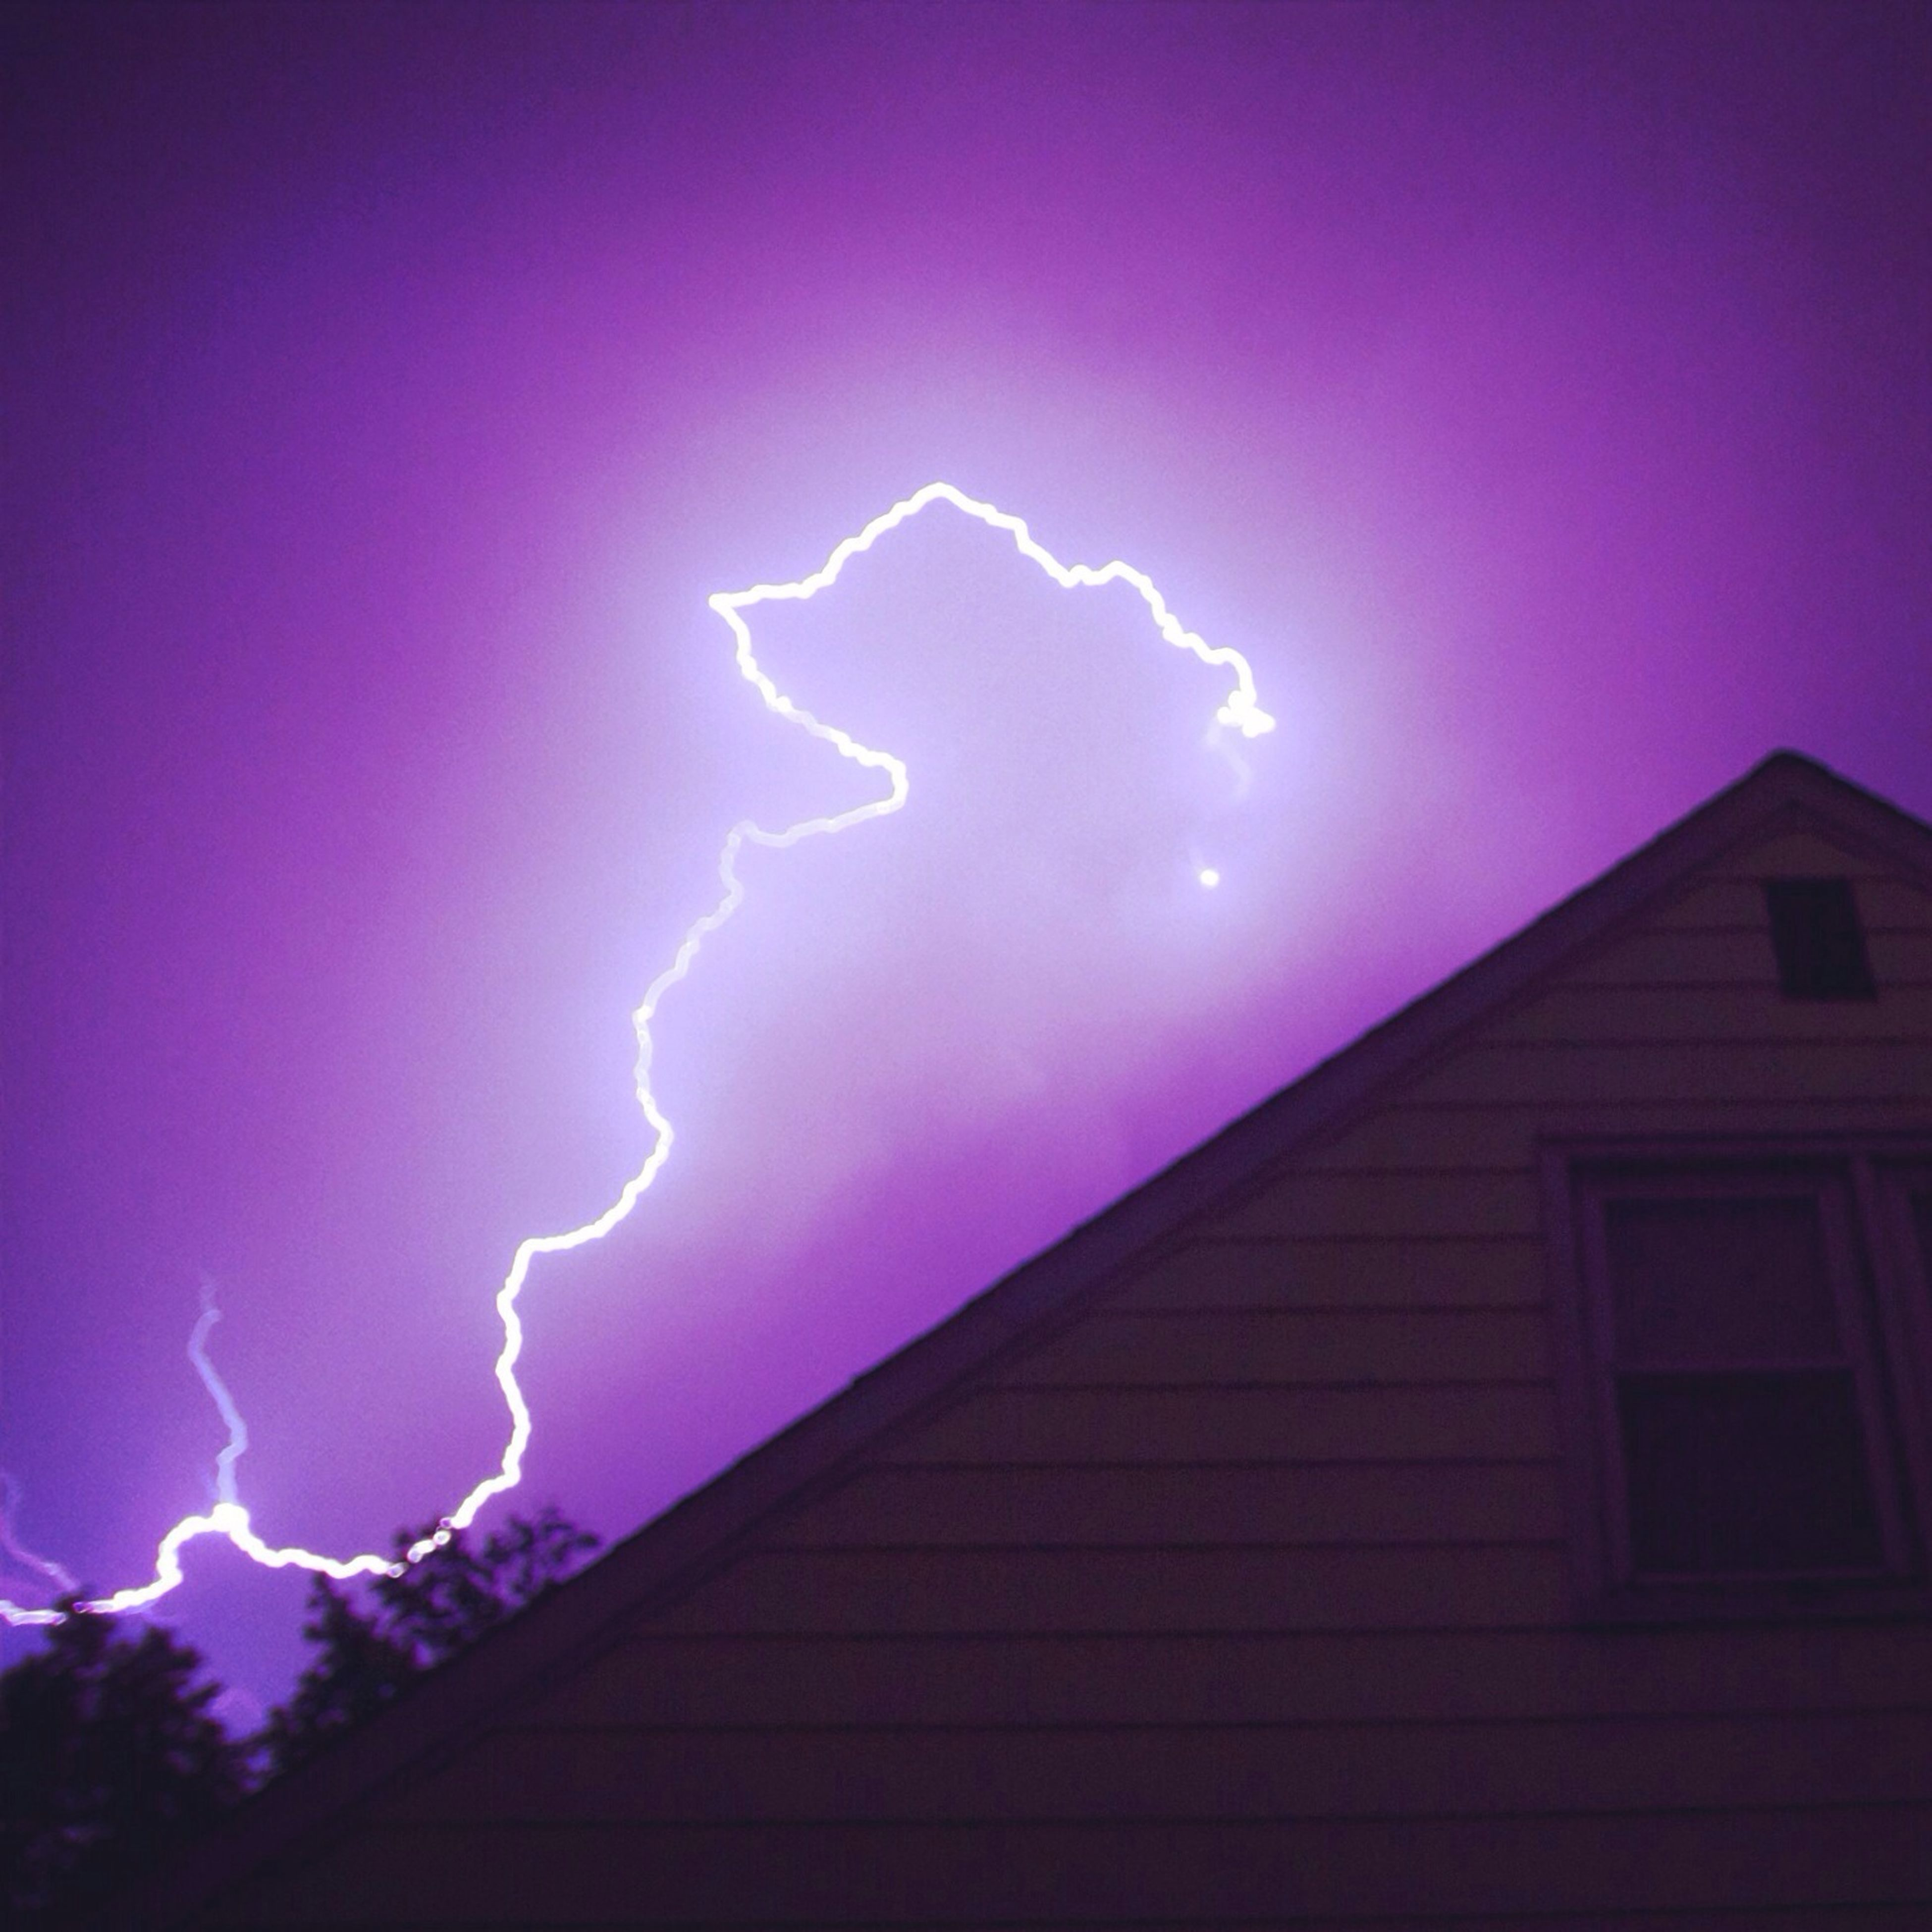 sky, blue, night, illuminated, low angle view, power in nature, lightning, building exterior, thunderstorm, cloud - sky, built structure, architecture, multi colored, copy space, weather, storm, nature, no people, outdoors, purple